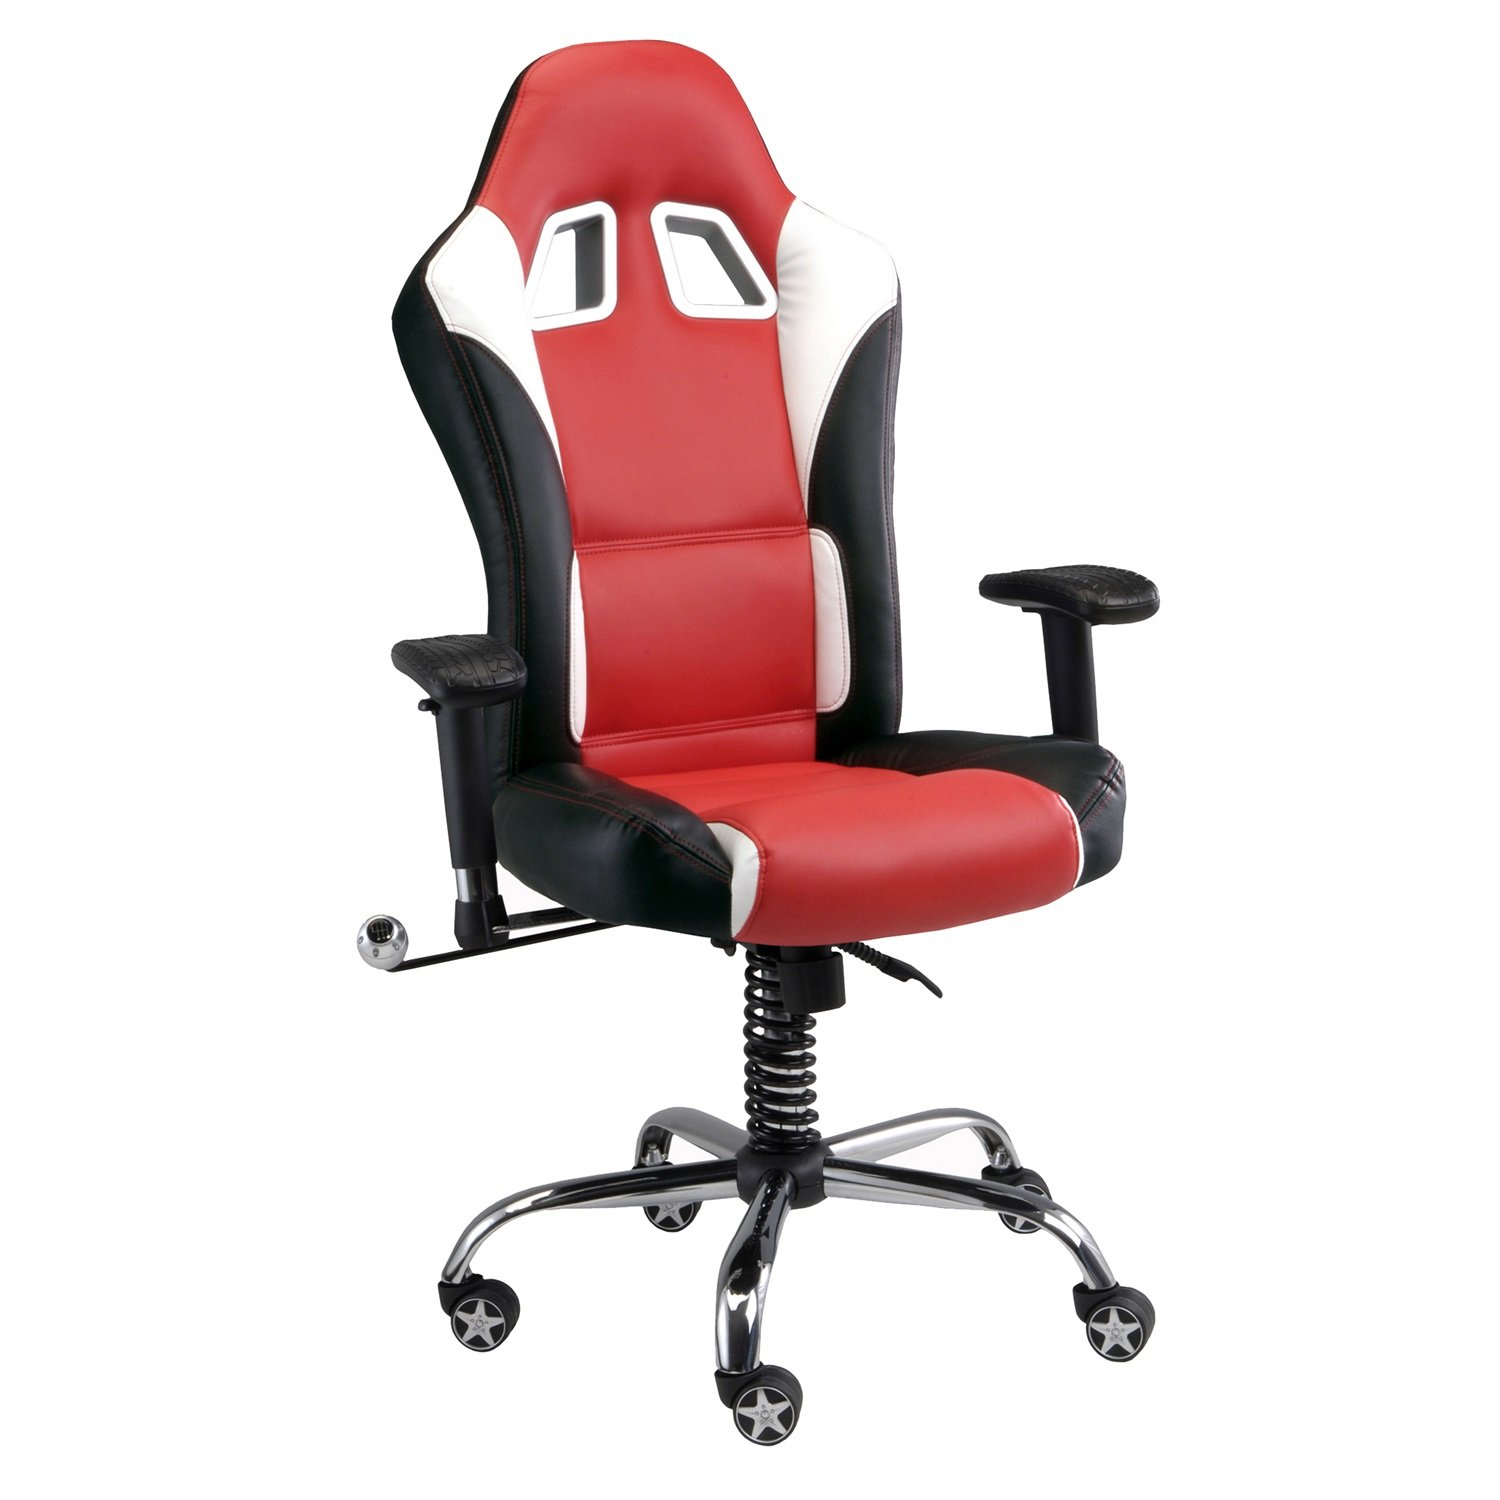 Amazon Pitstop Furniture IN1100N Navy SE fice Chair Automotive